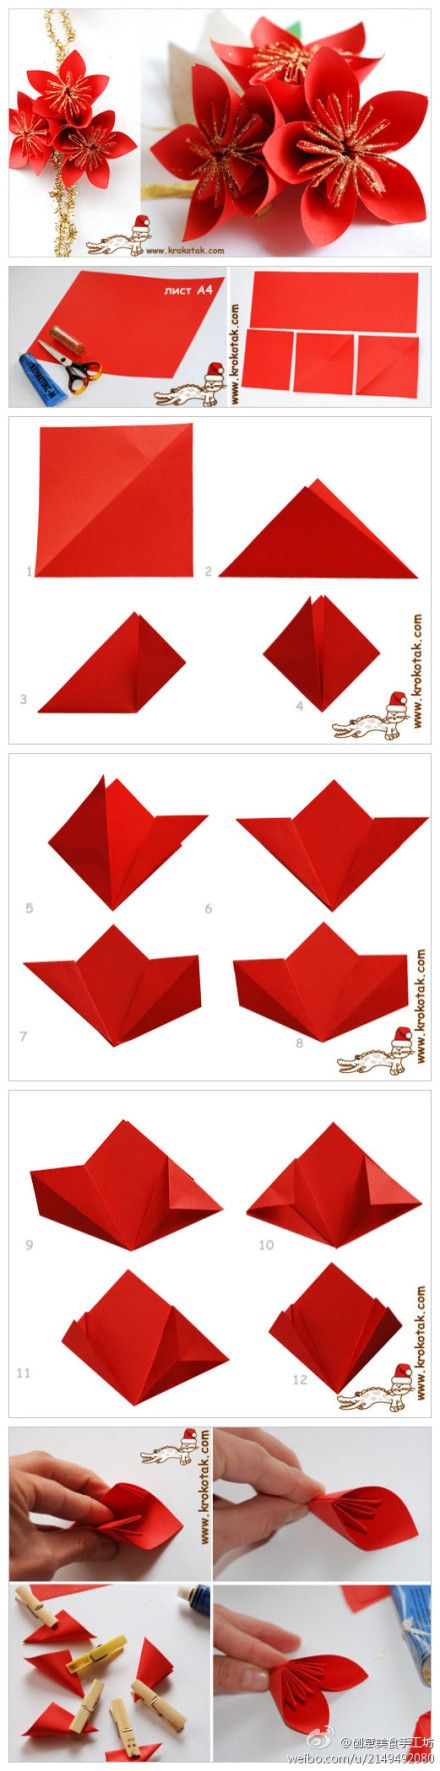 40 best diy origami projects to keep your entertained today 40 best diy origami projects to keep your entertained today origami tutorial diy origami and animal fun mightylinksfo